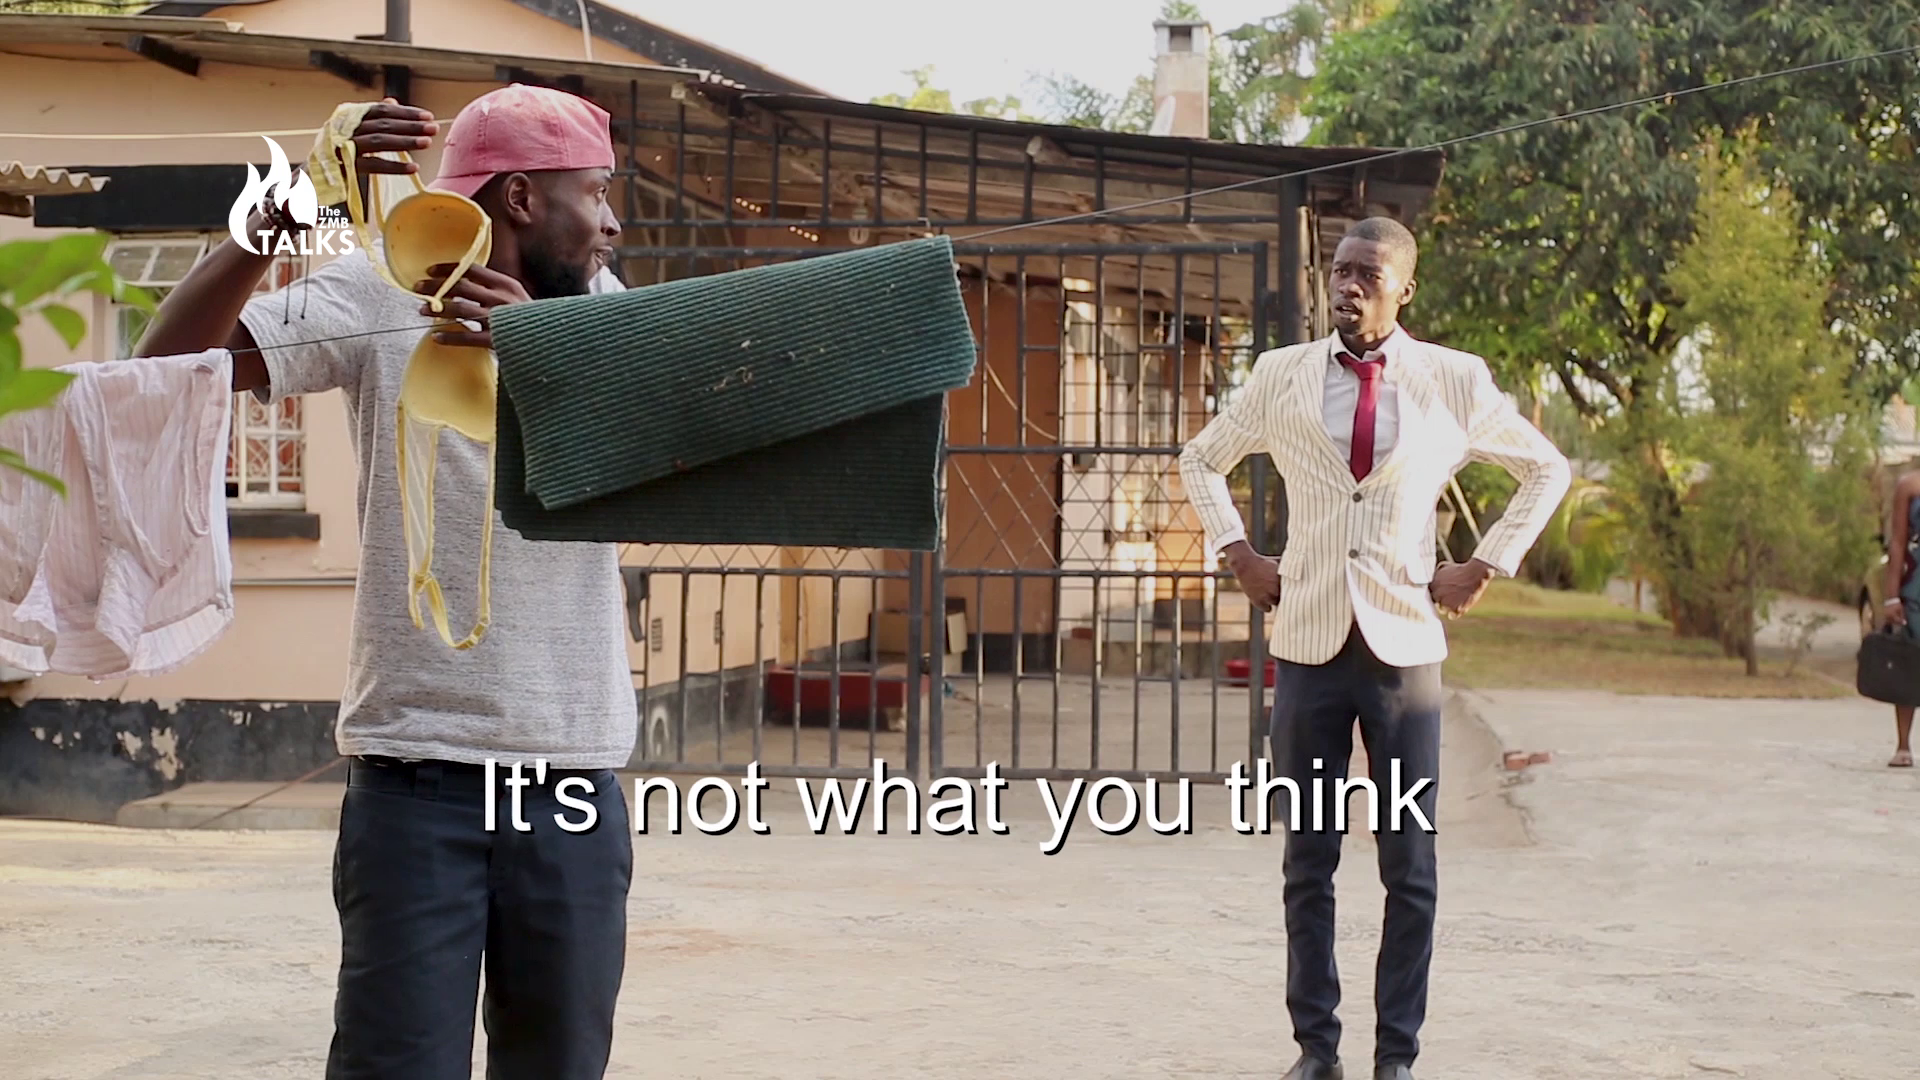 theZMBTalks Debuts A Comedy Skit for Zambia's Independence Day